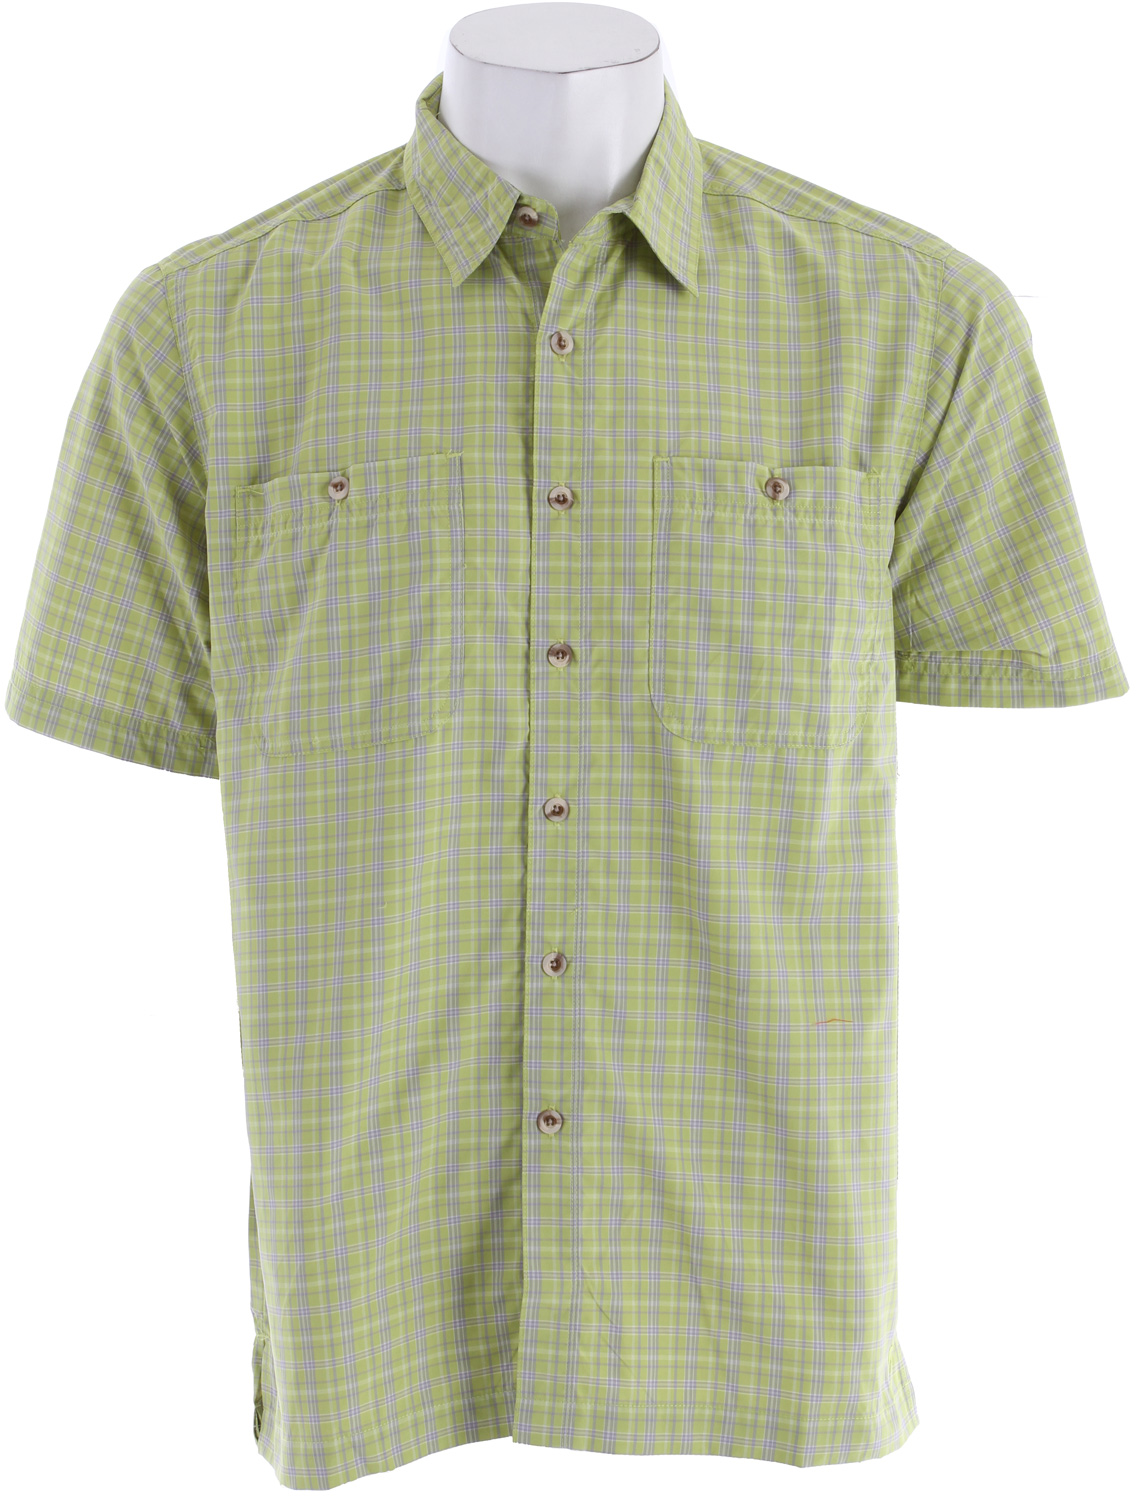 "Throw on the Richmond Point Short Sleeve Shirt for all your long afternoon walks. No matter at the local restaurant or your backyard bbq, this classic plaid will keep you cool with the sun on your back.Key Features of the White Sierra Richmond Point Shirt: 64% nylon 36% polyester woven plaid UPF 30 Wicking 2 chest pockets 31.5"" back length - $29.95"